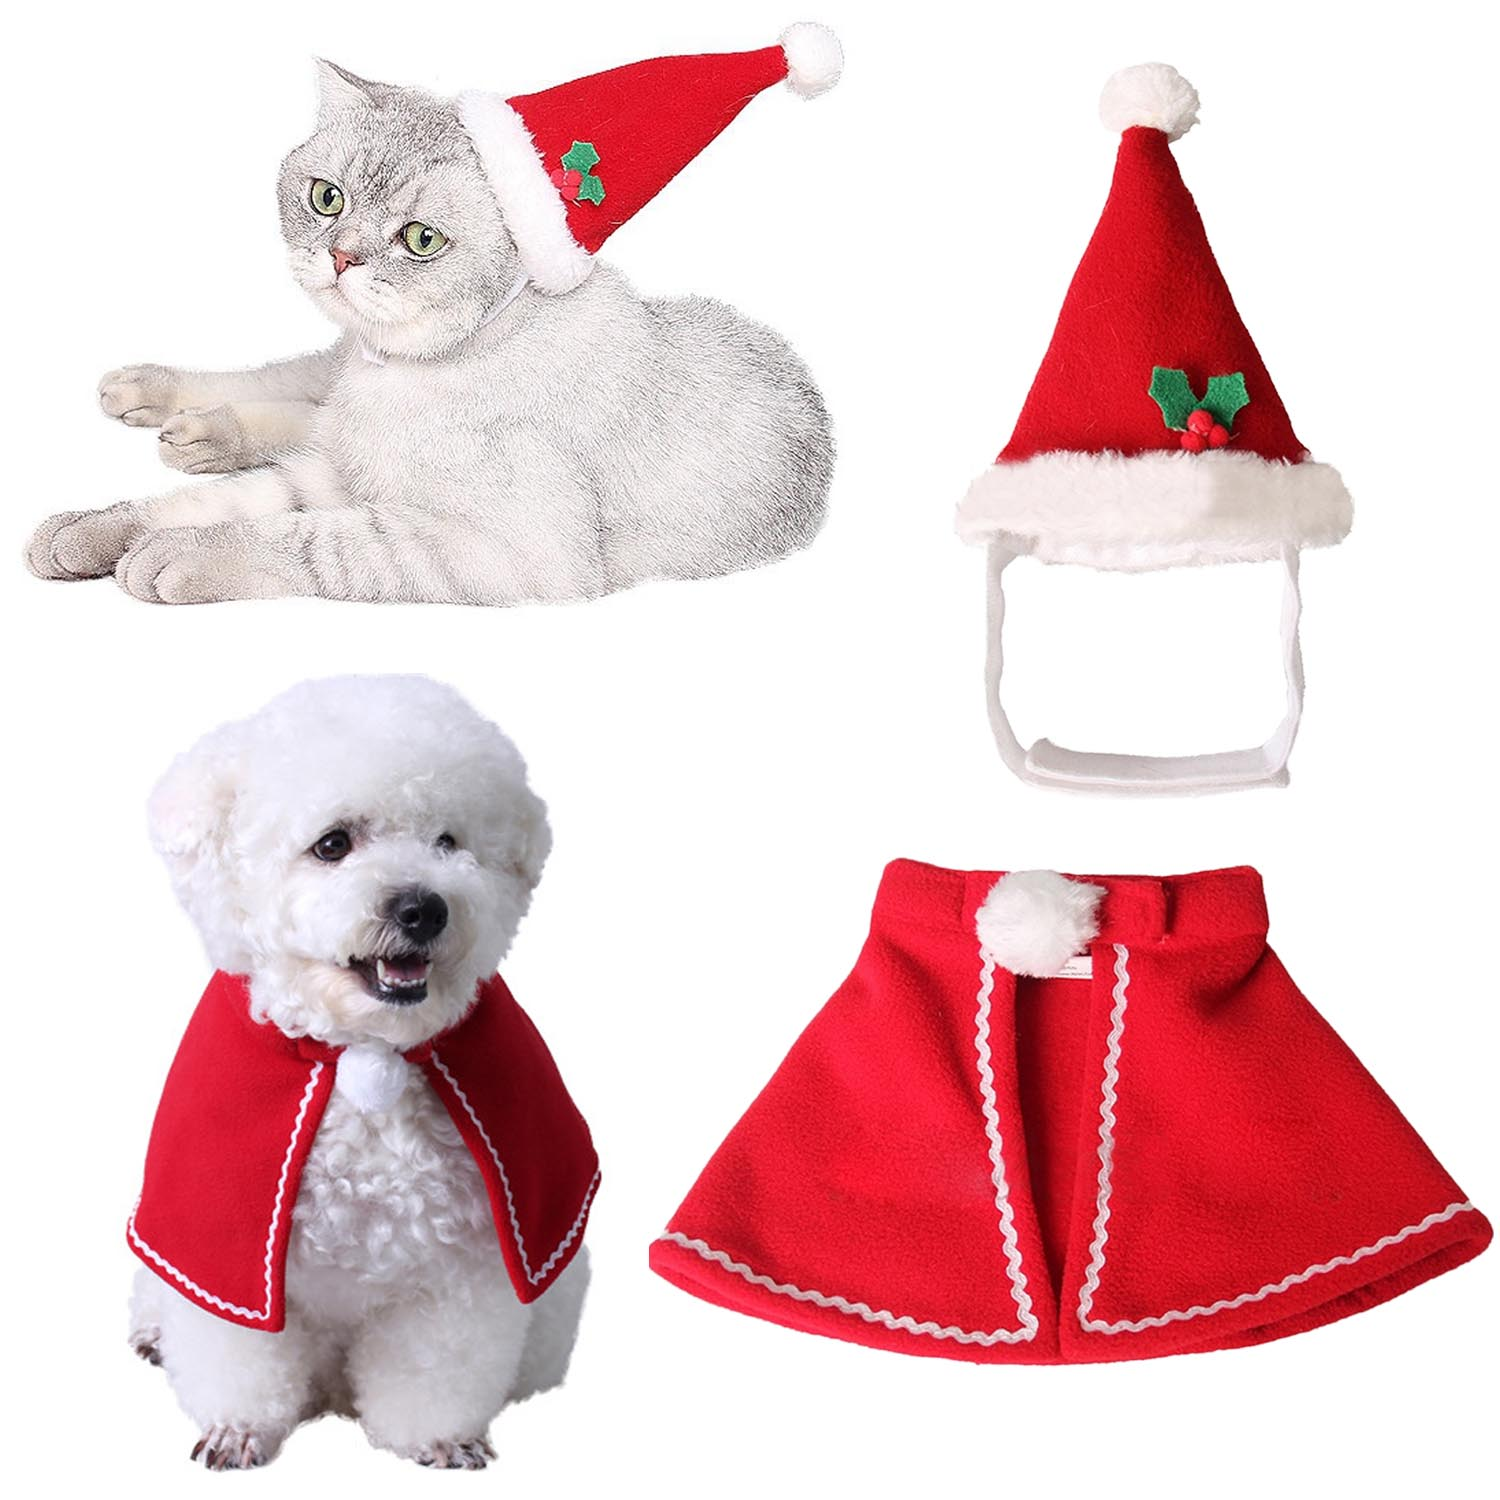 Dog Caps Home & Garden Shop For Cheap 1 Set Christmas Pet Hat Scarf Dog Puppy Cat Kitten Gifts Halloween Cosplay Costume Funny Decoration Red Mascot Soft Clothing